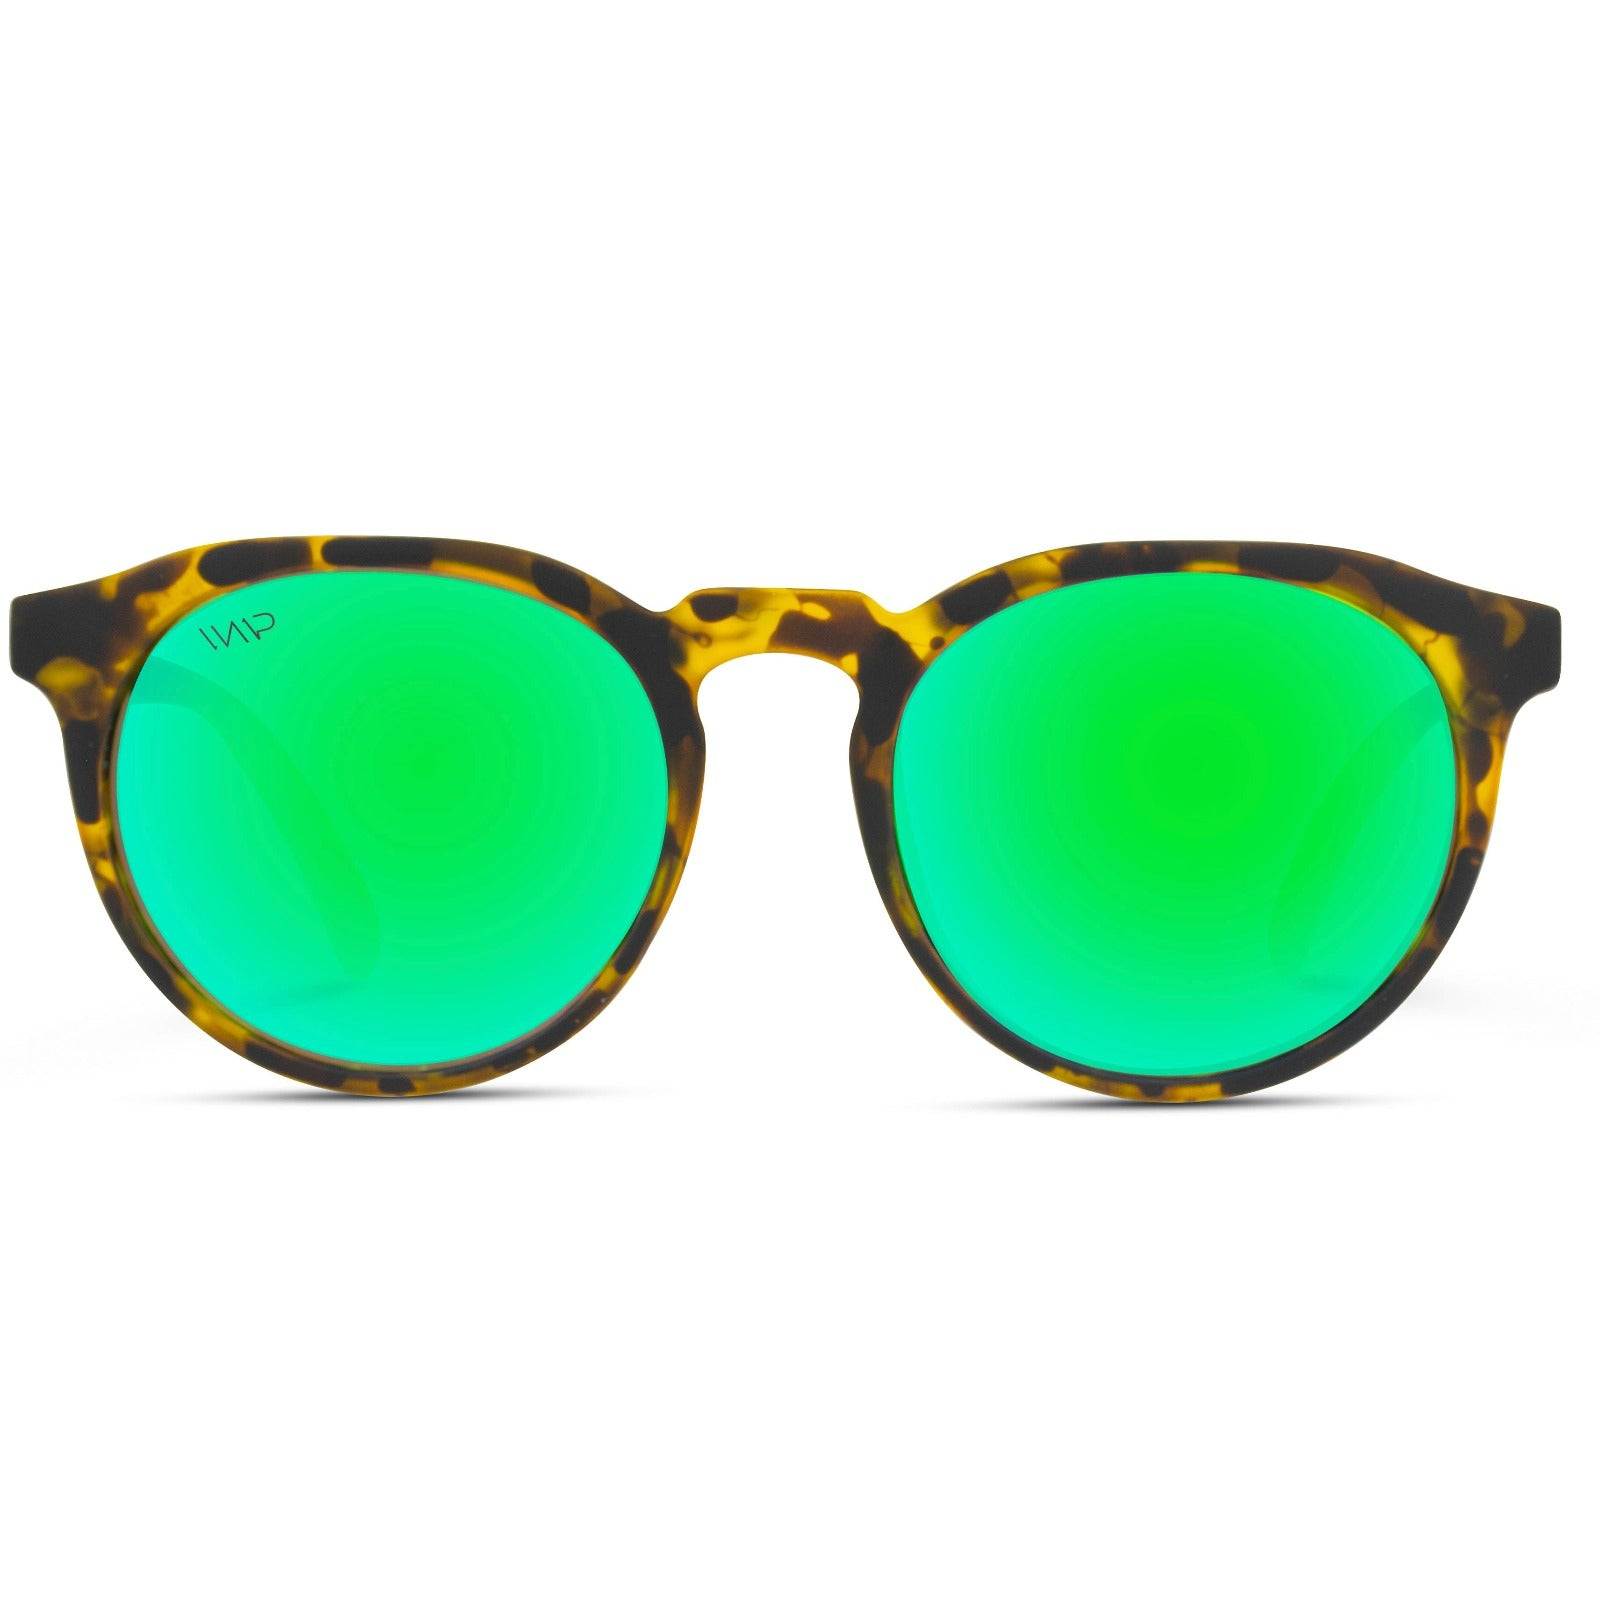 Cameron Round Retro Flat Top Mirrored Unisex Sunglasses